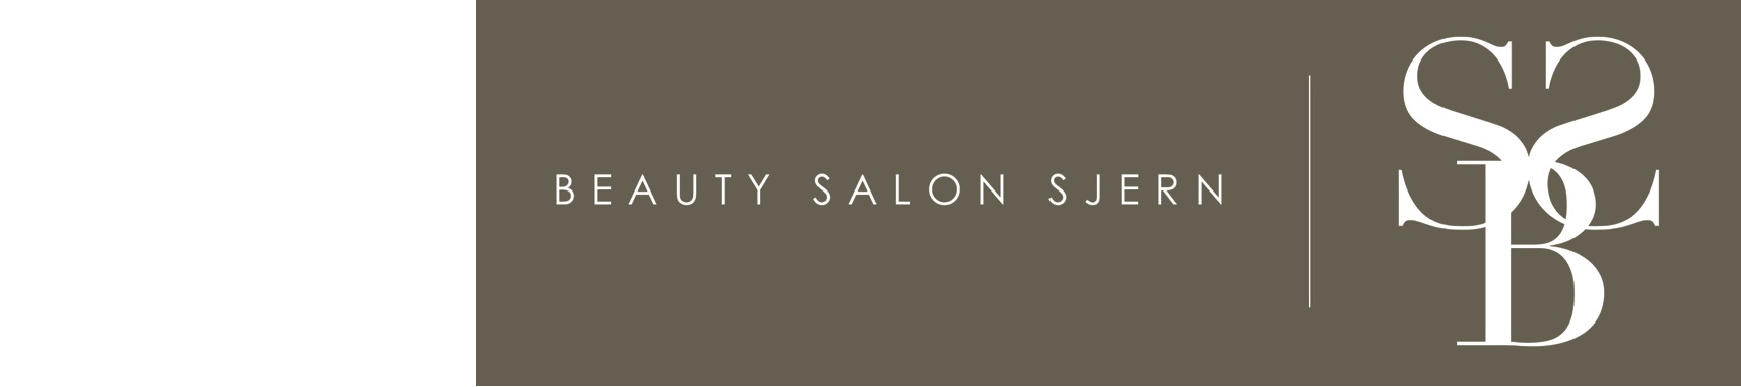 BeautySalon Sjern